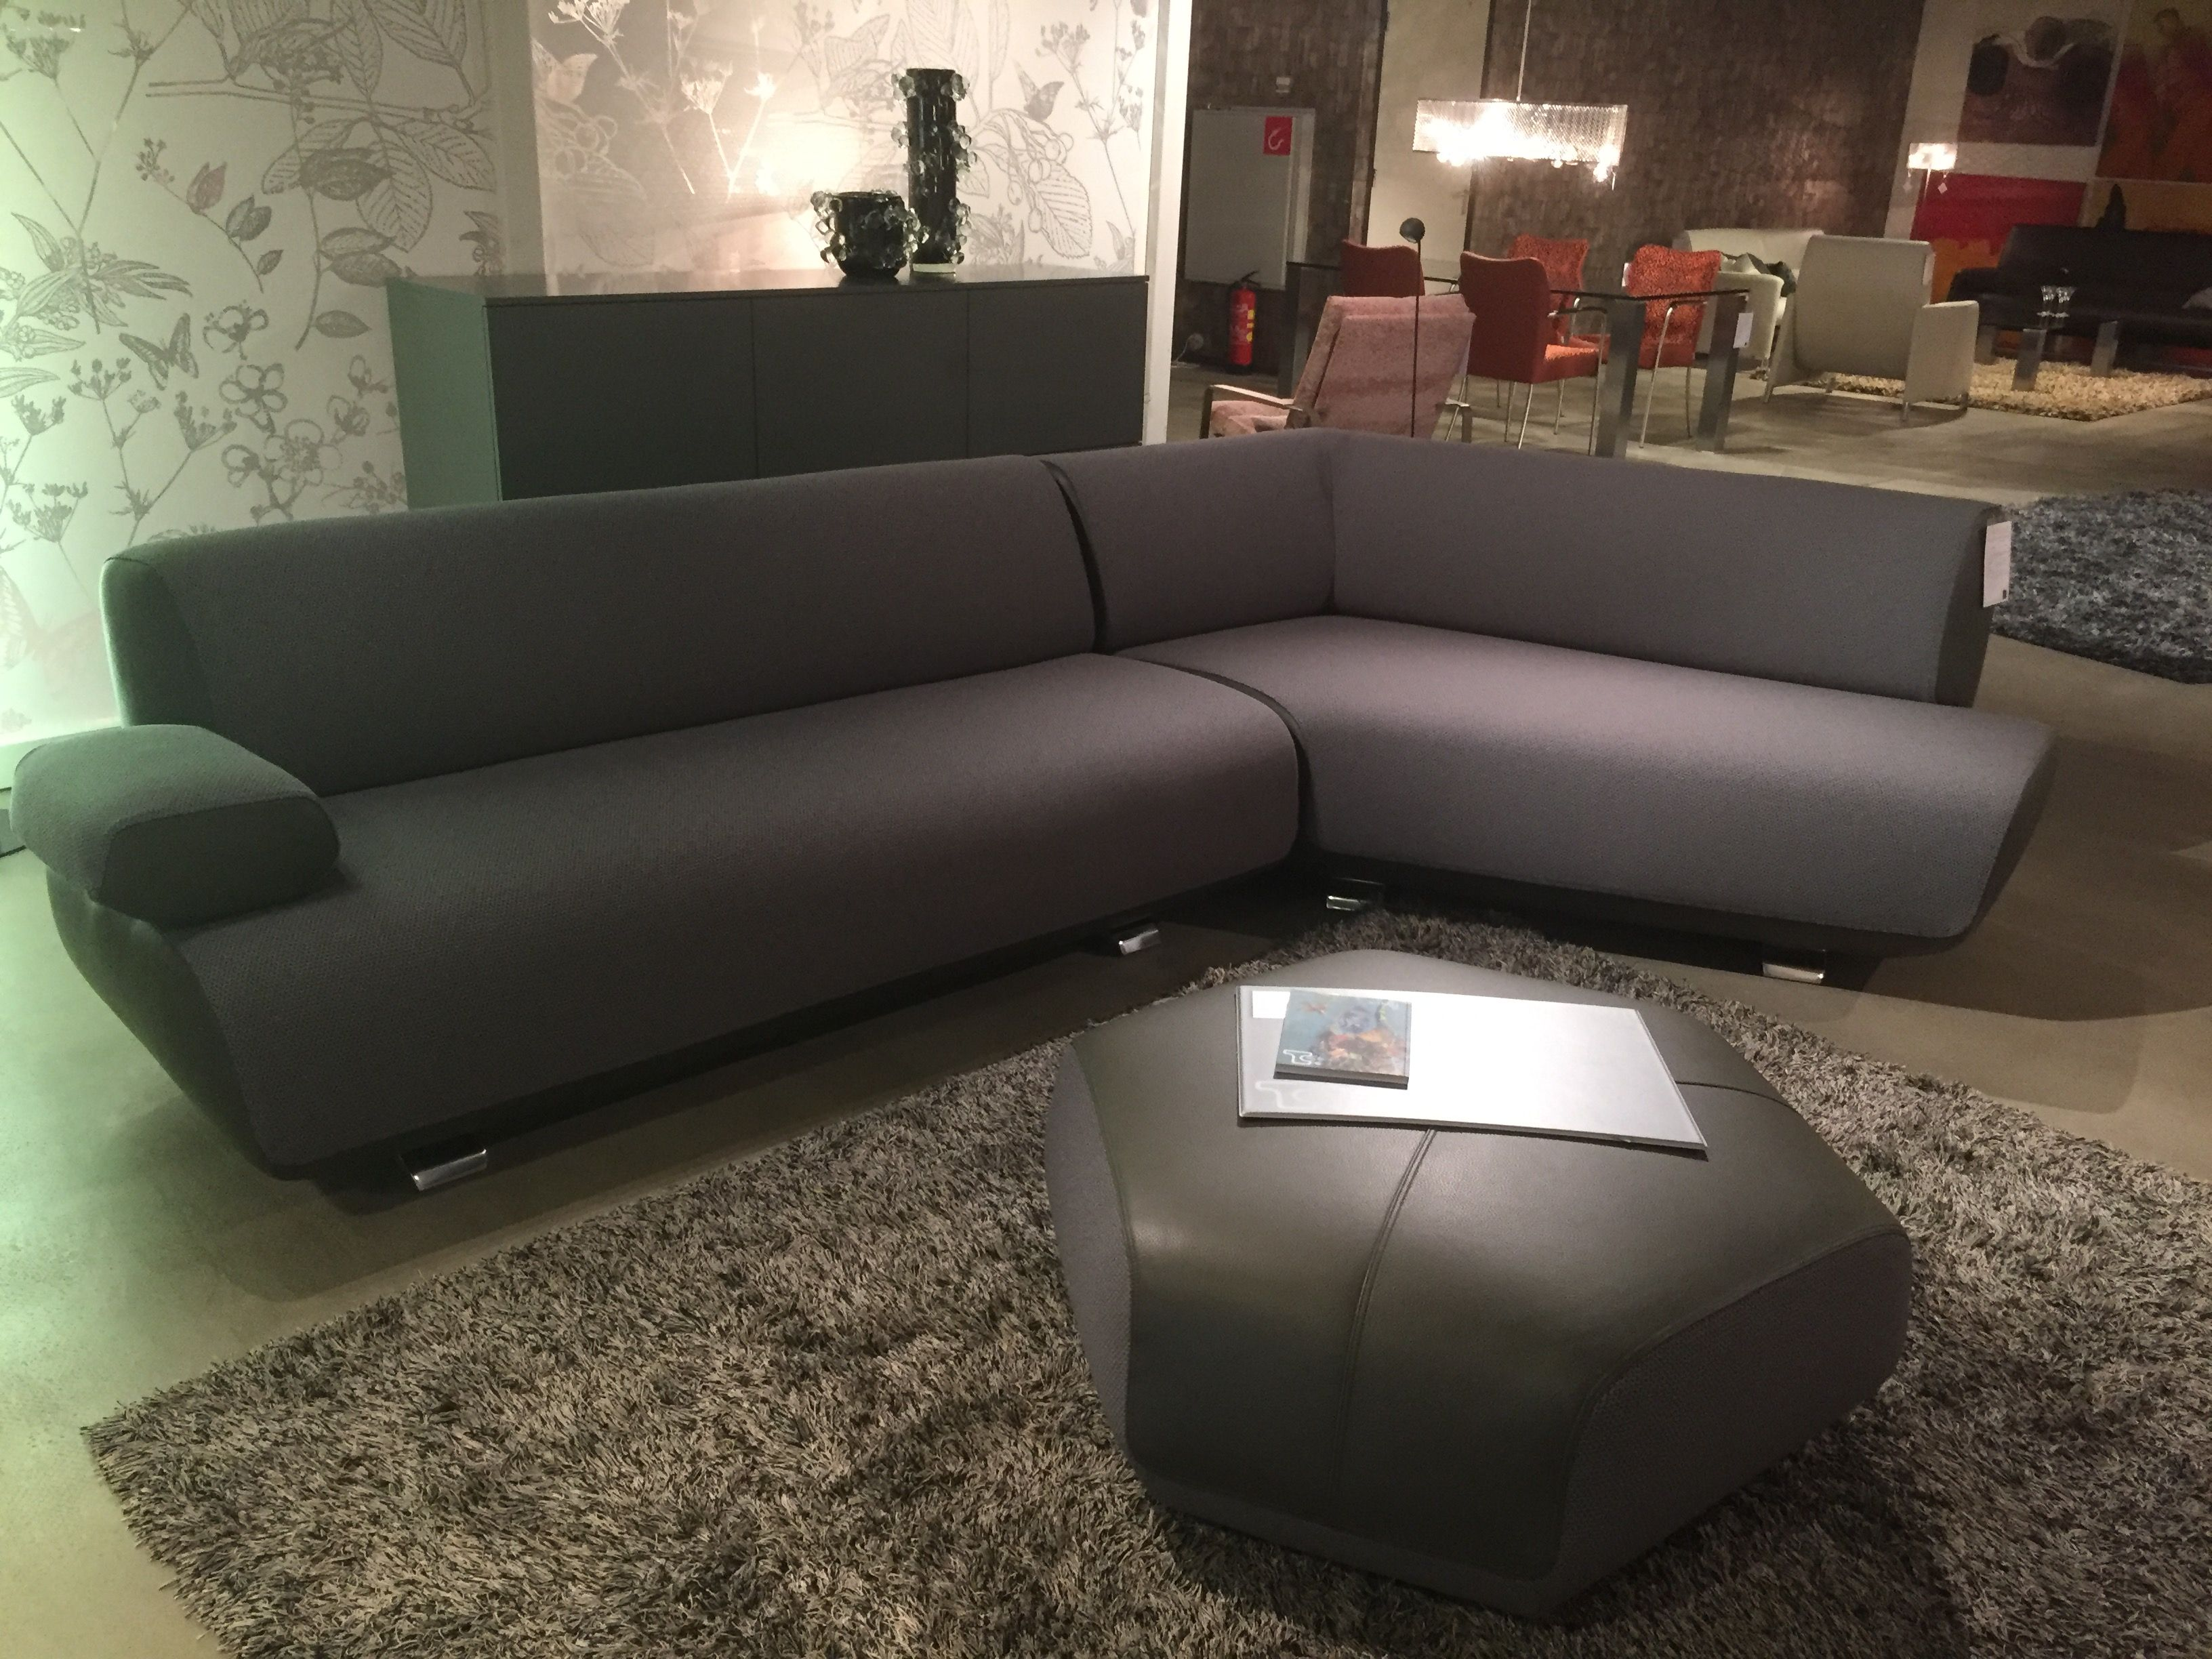 Design On Stock Poef.Aikon Lounge Sale Trendy Softroom Discover The New Outstanding